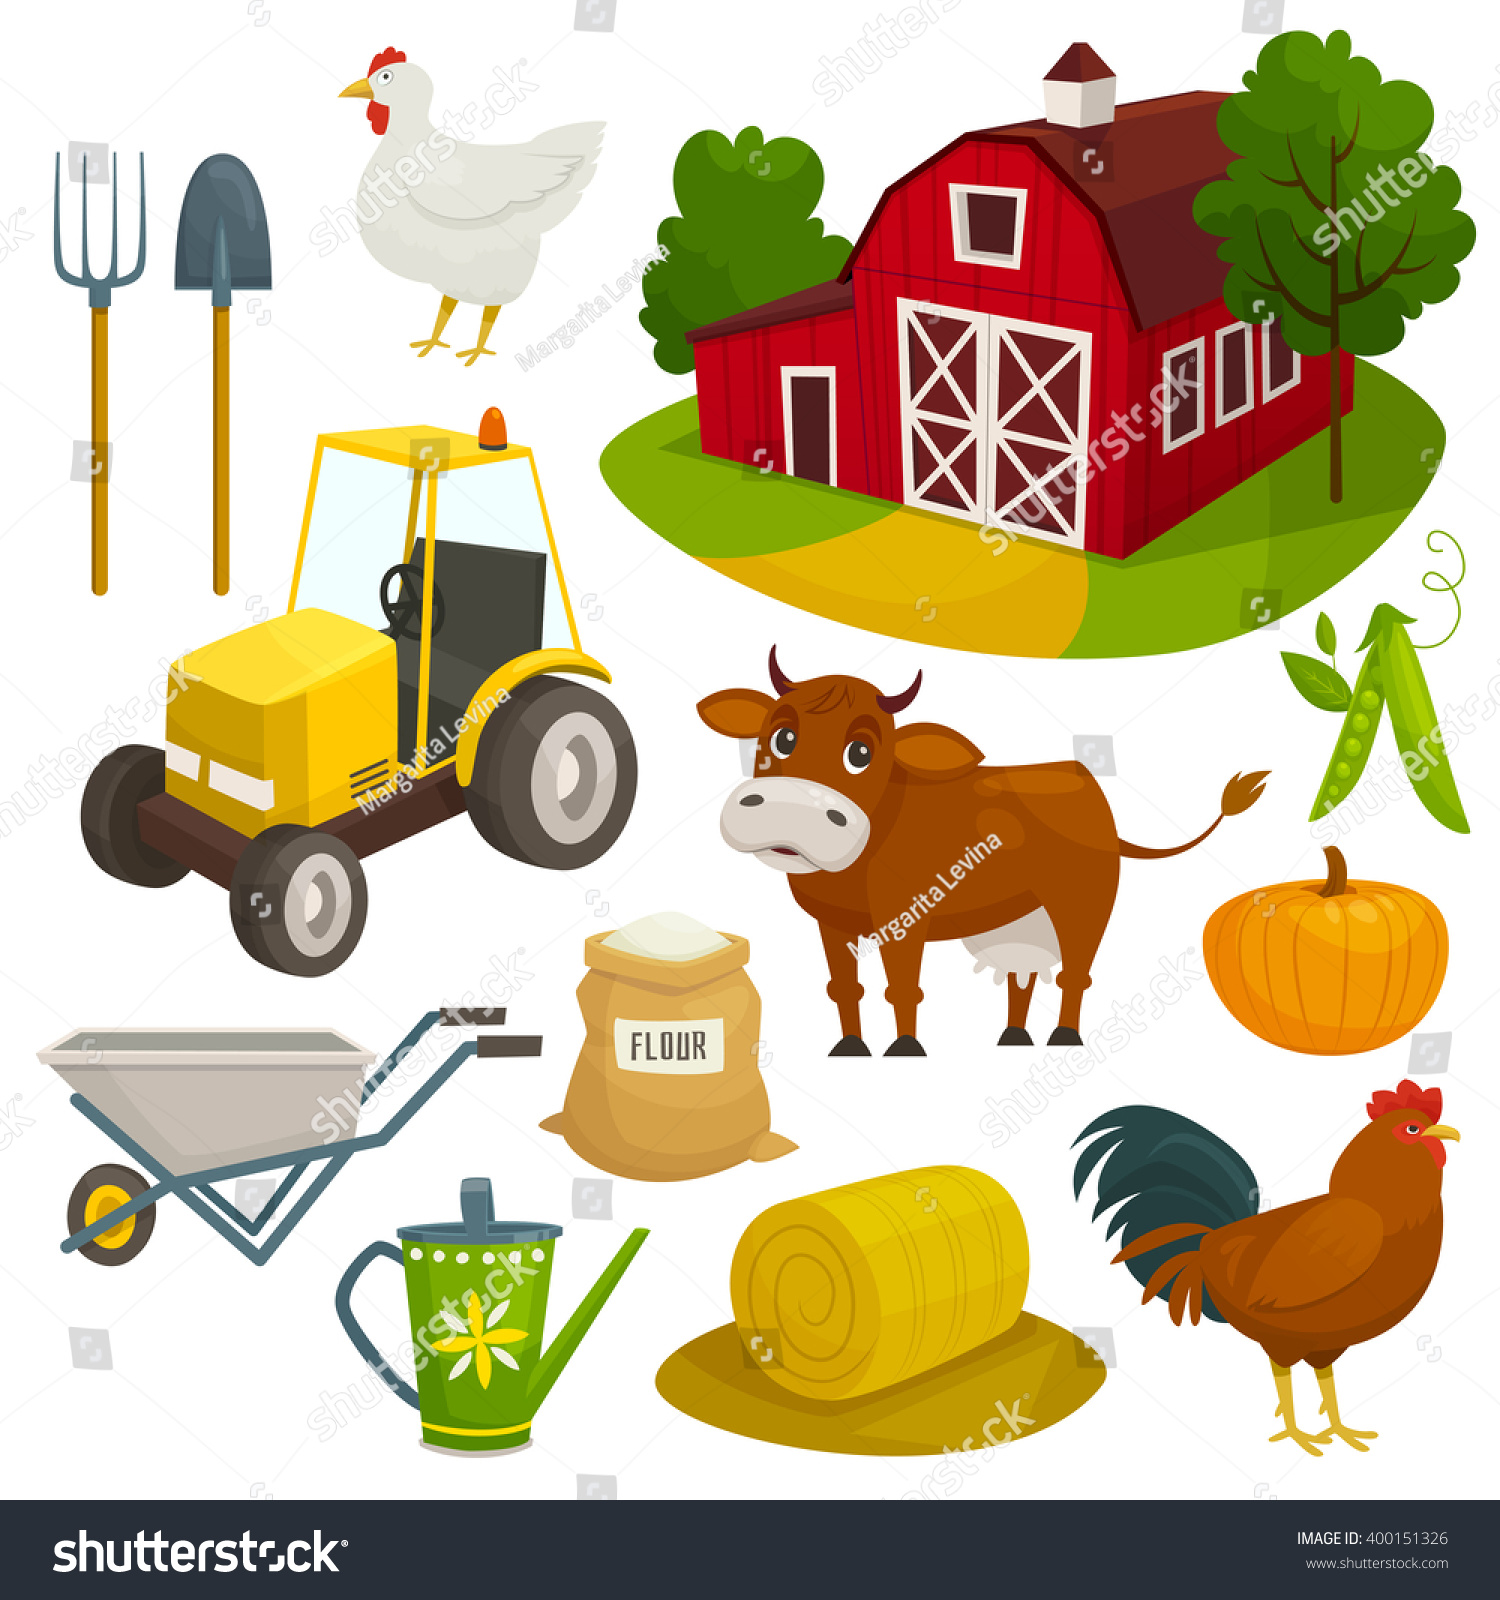 Cartoon Vector Illustration Flea Biting On 154297622 also 8430 besides Loaf Of Bread Cartoon besides 090621 122789 871042 likewise Walt Disney Animated Moving Wallpapers For Mobile. on wheat cartoon character